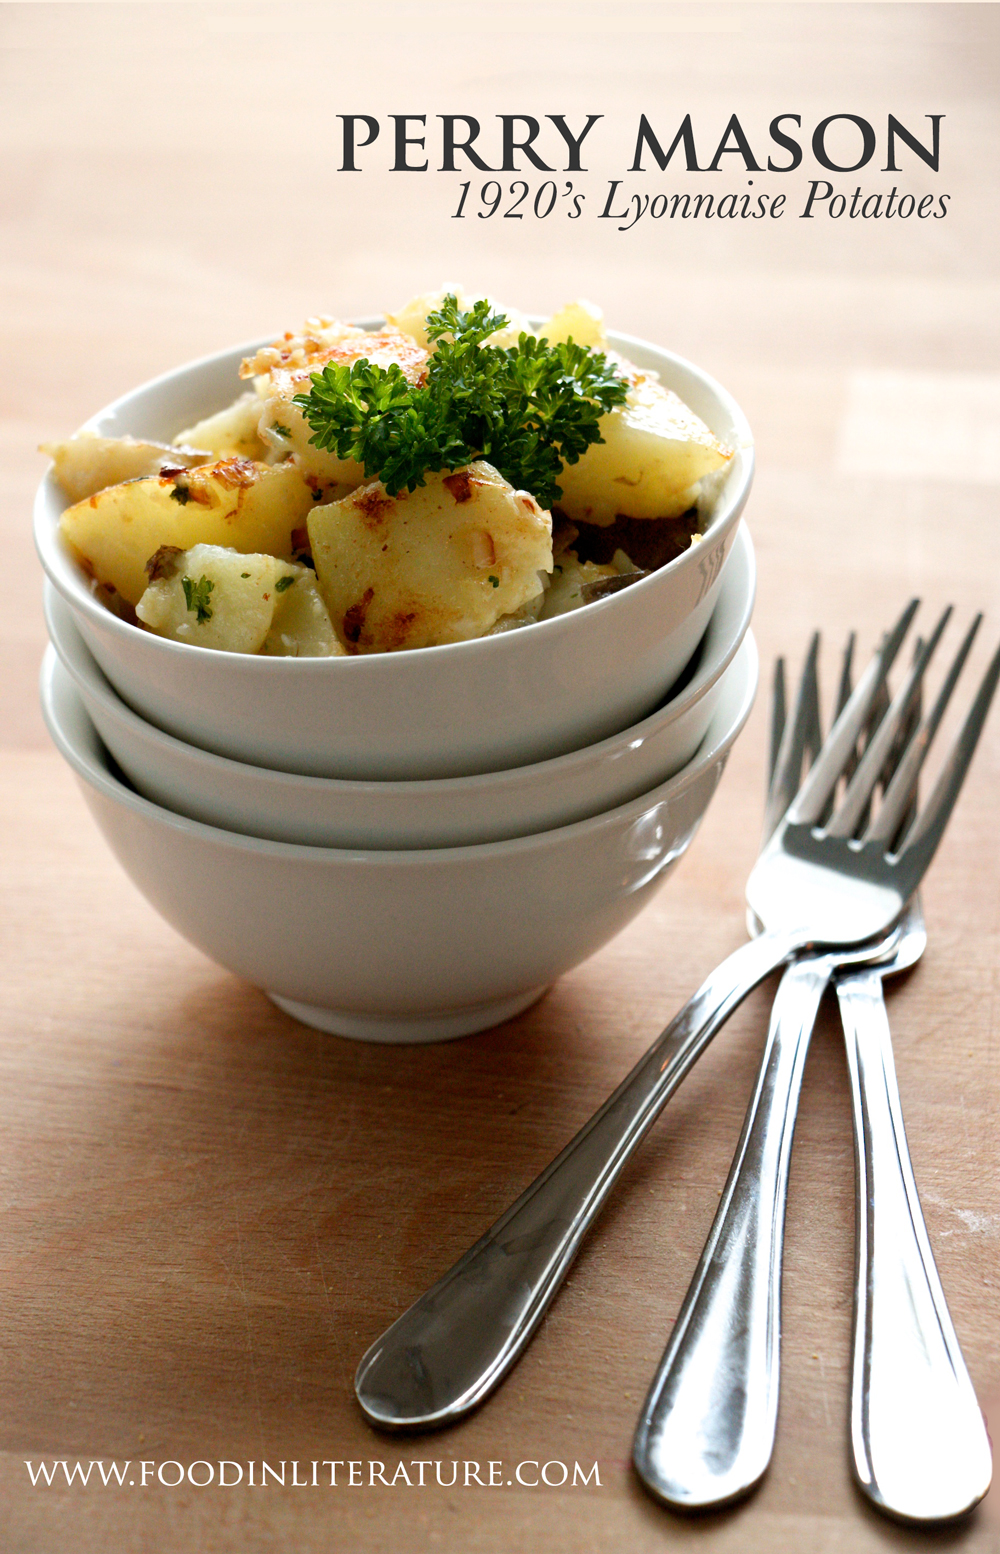 Dig into a bowl of Lyonnaise Potatoes, a recipe served to Perry Mason in one of his novels. A simple 4 ingredient side dish straight from the 1920's.